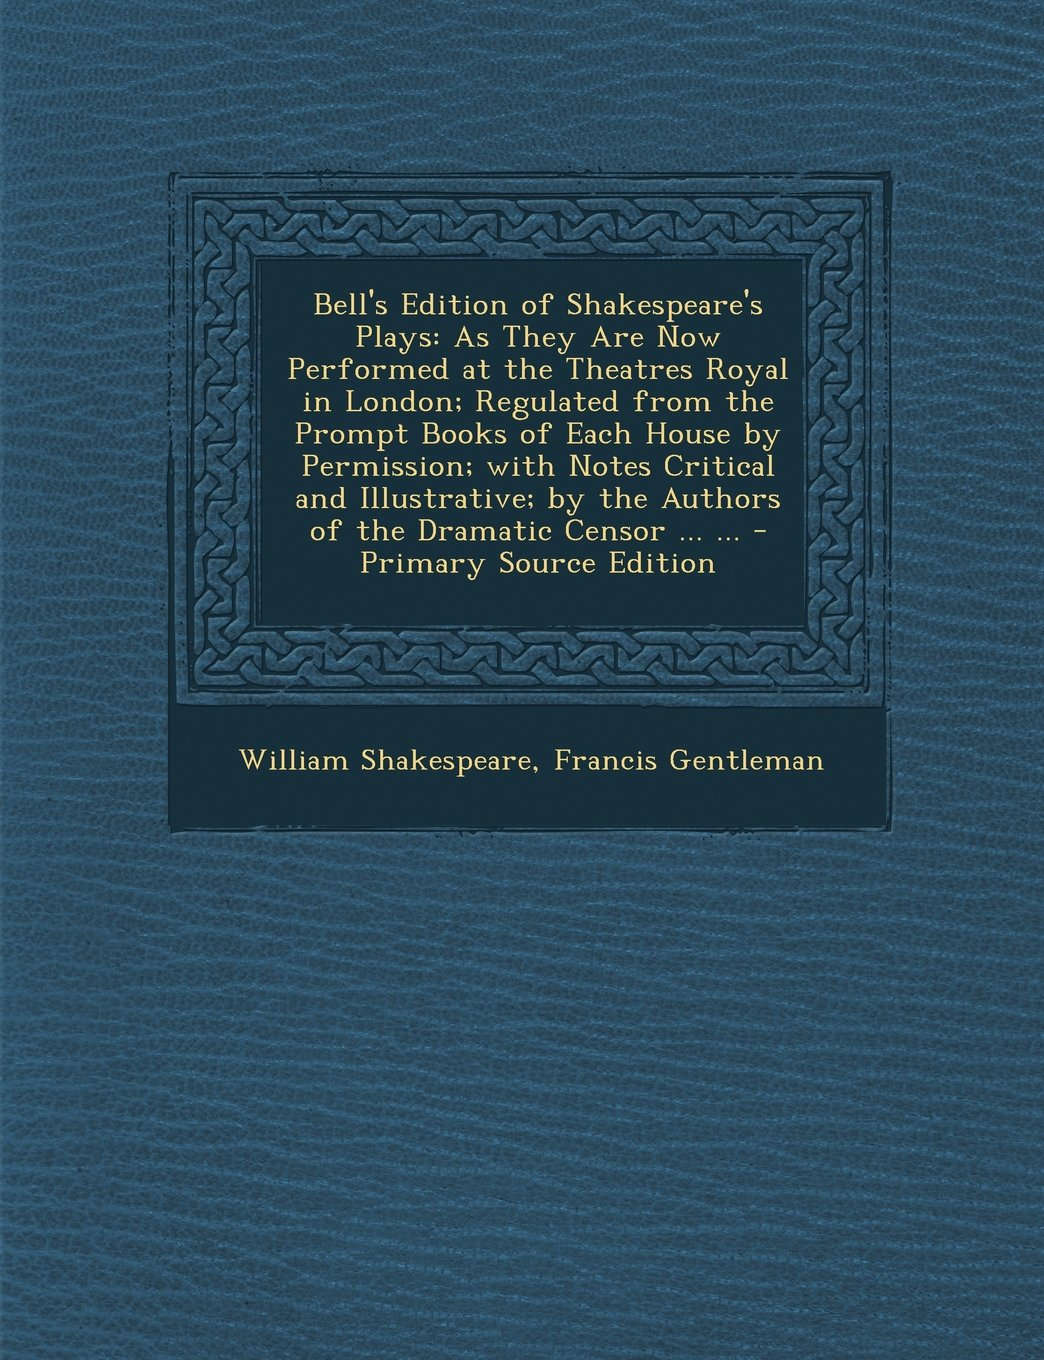 Download Bell's Edition of Shakespeare's Plays: As They Are Now Performed at the Theatres Royal in London; Regulated from the Prompt Books of Each House by ... of the Dramatic Censor ... ... - Primary So pdf